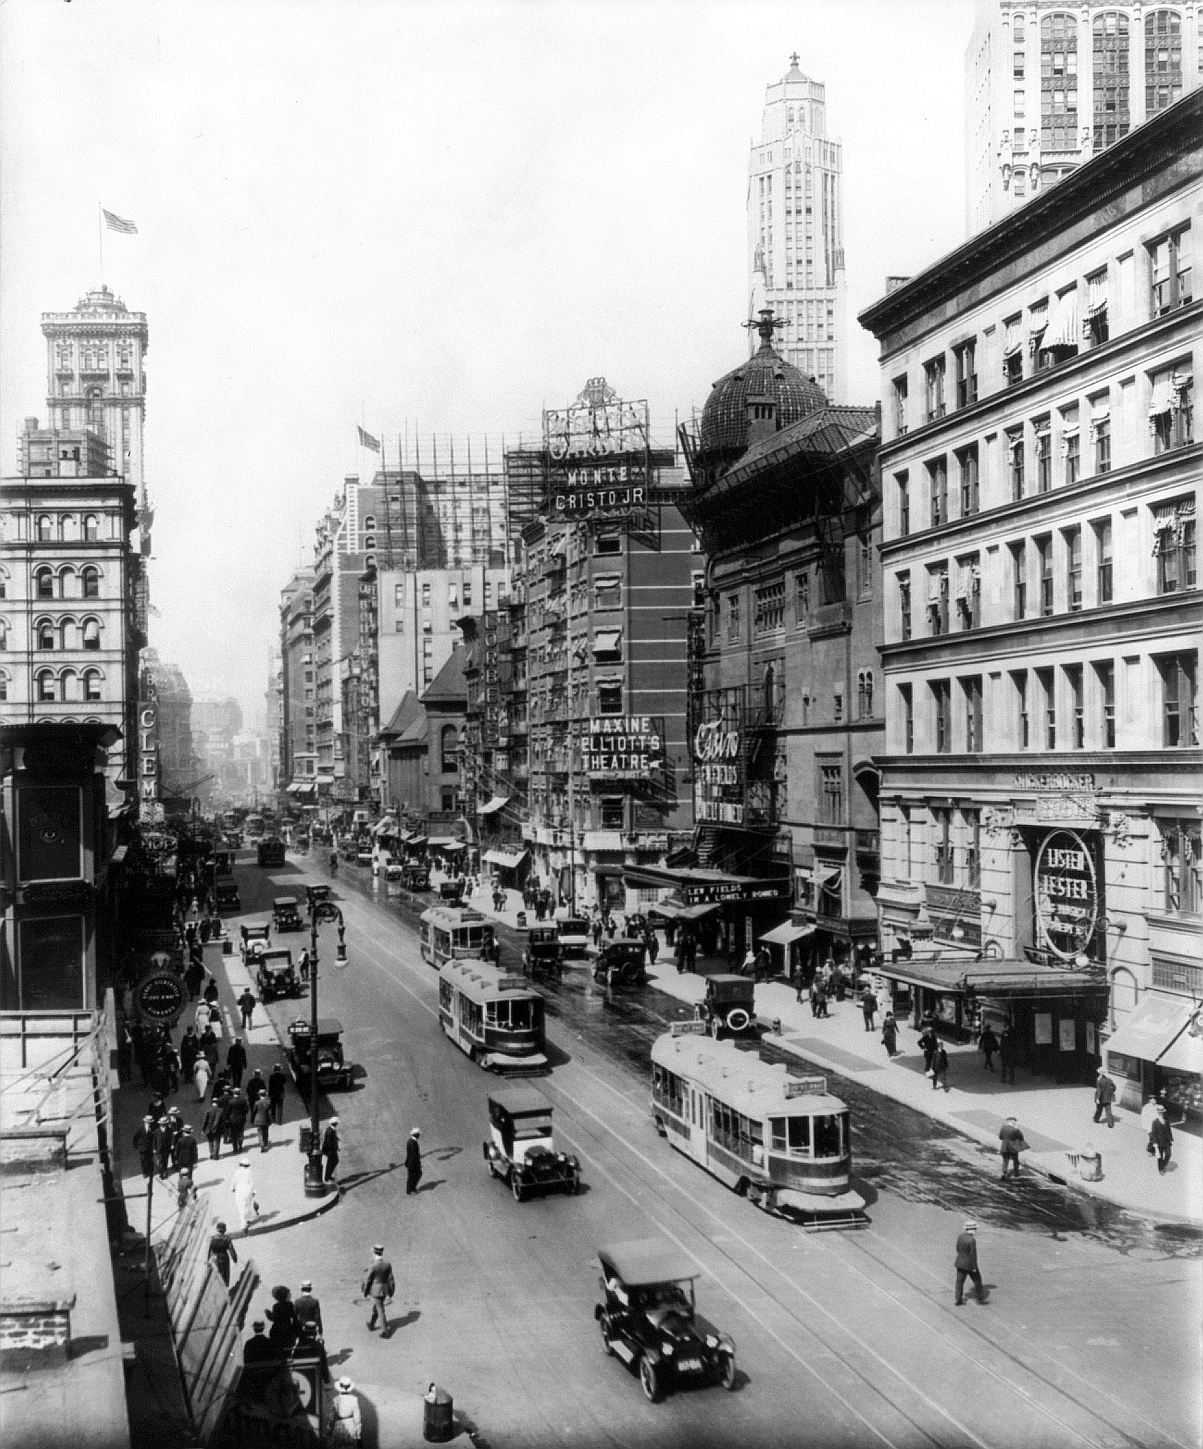 https://upload.wikimedia.org/wikipedia/commons/c/c4/Broadway_theatres_1920.jpg